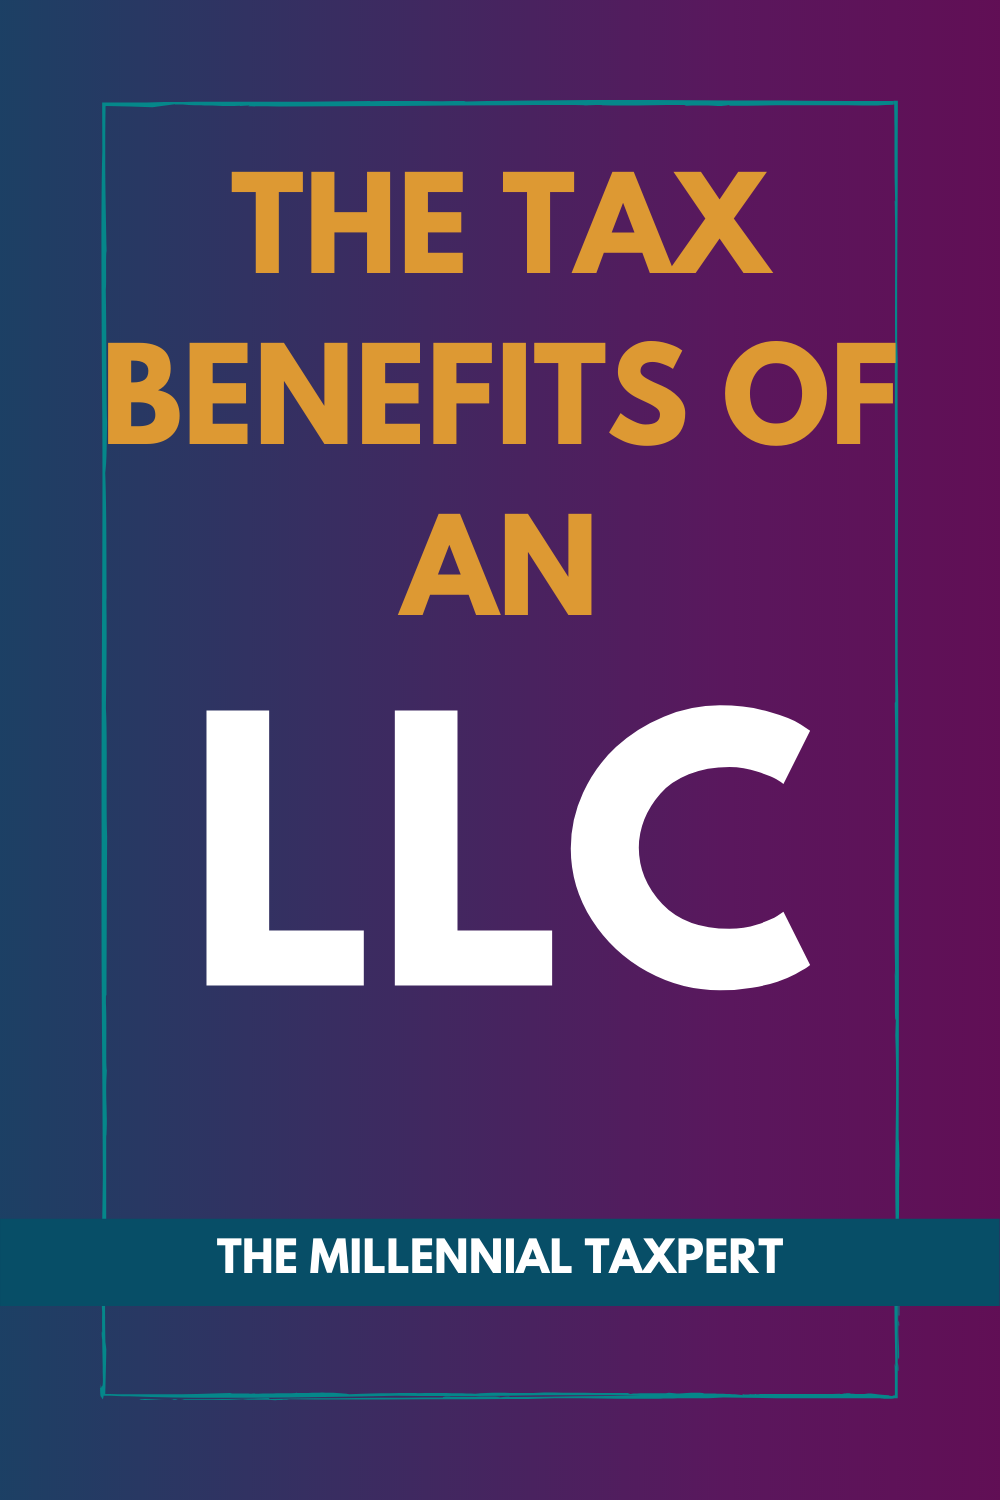 the tax benefits of an LLC